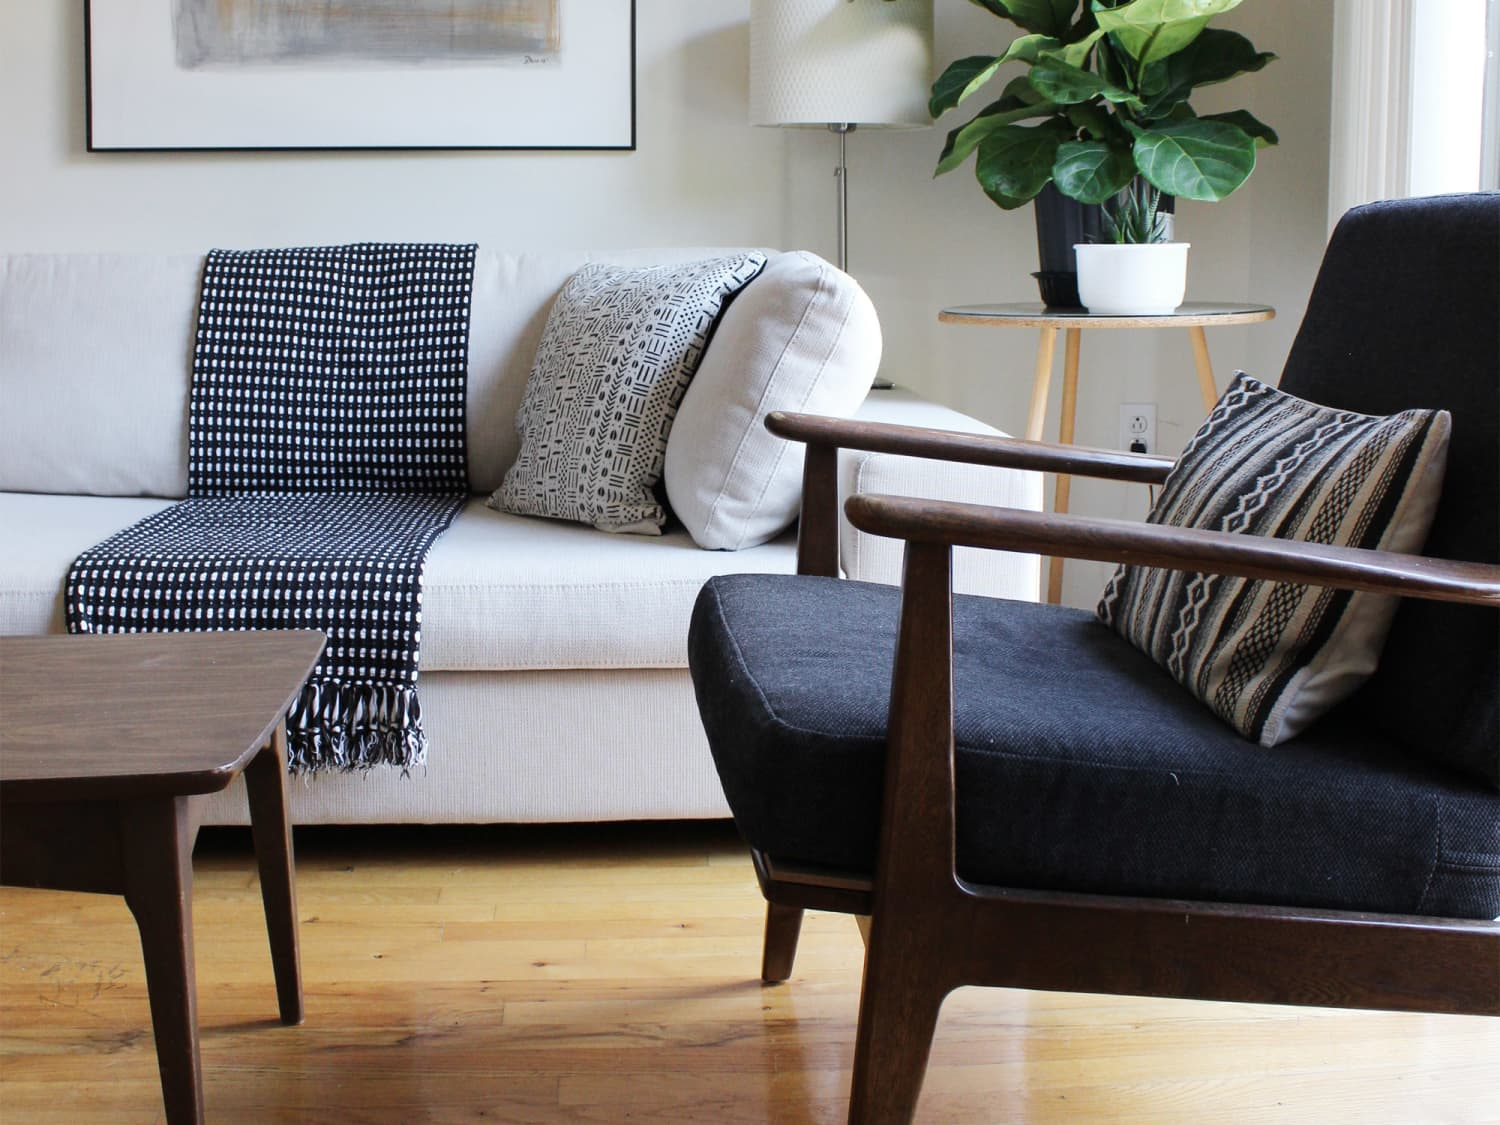 Never Want To Leave 10 Tips For Making Your Home The Most Inviting Yet Apartment Therapy